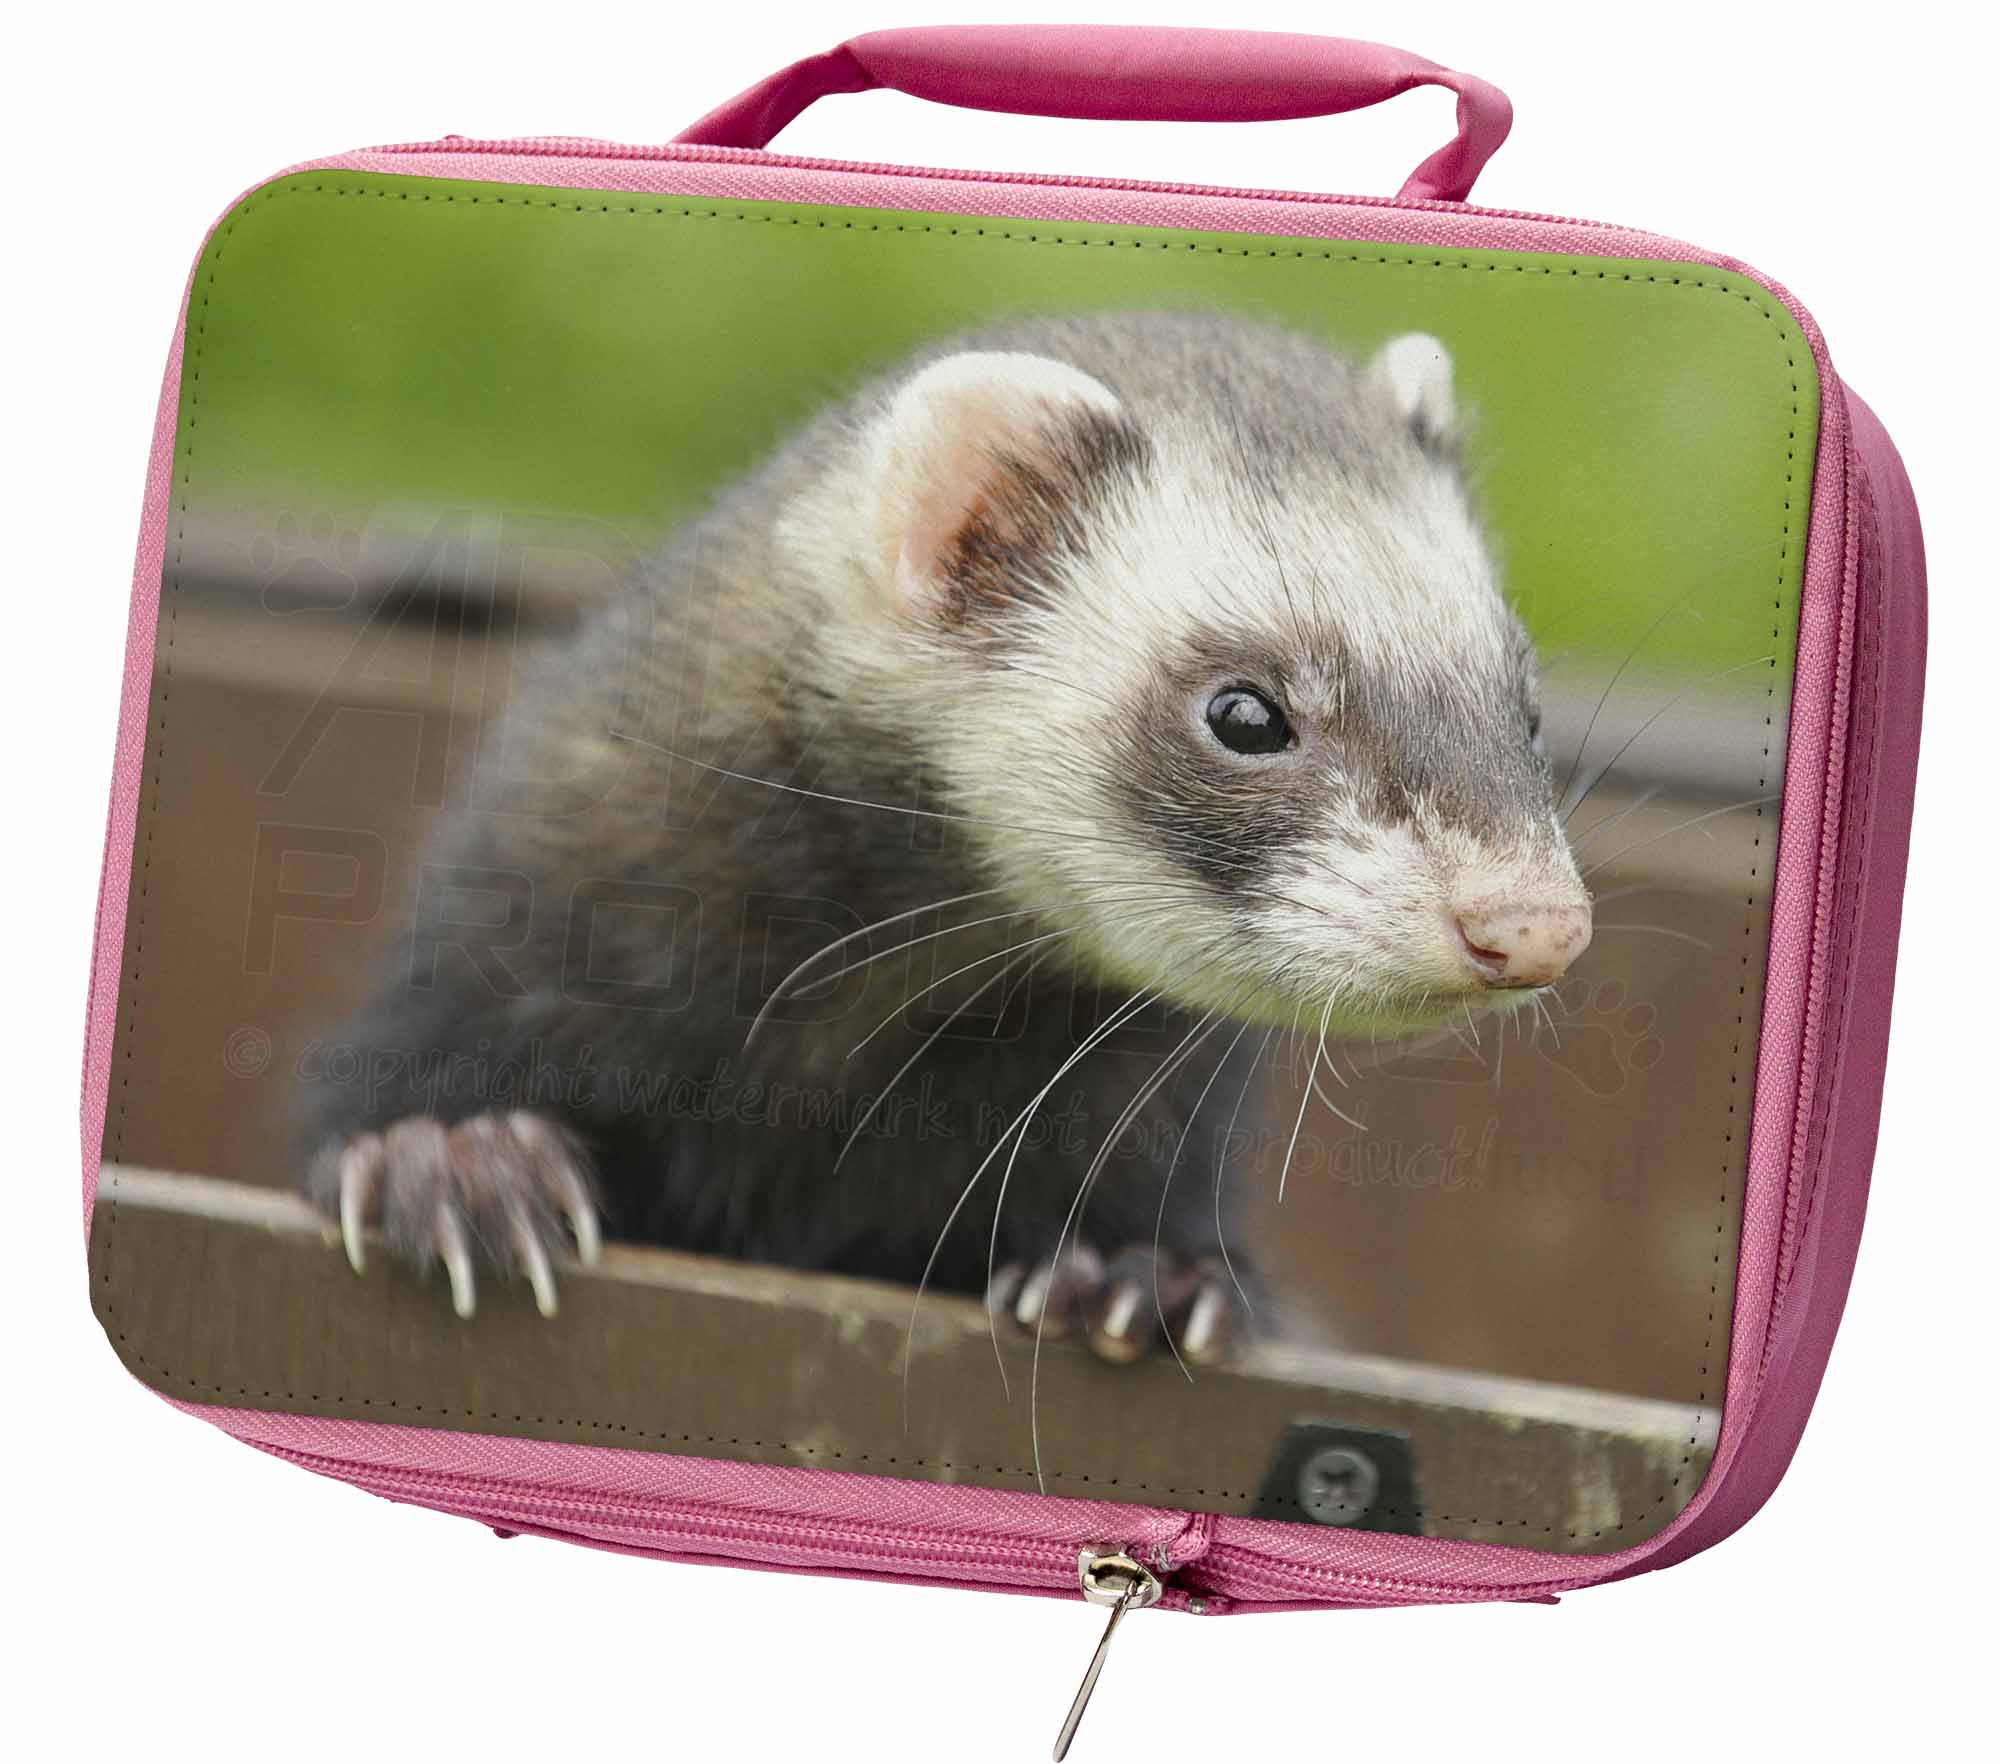 Ferret Print Picture Placemats in Gift Box FER-2P